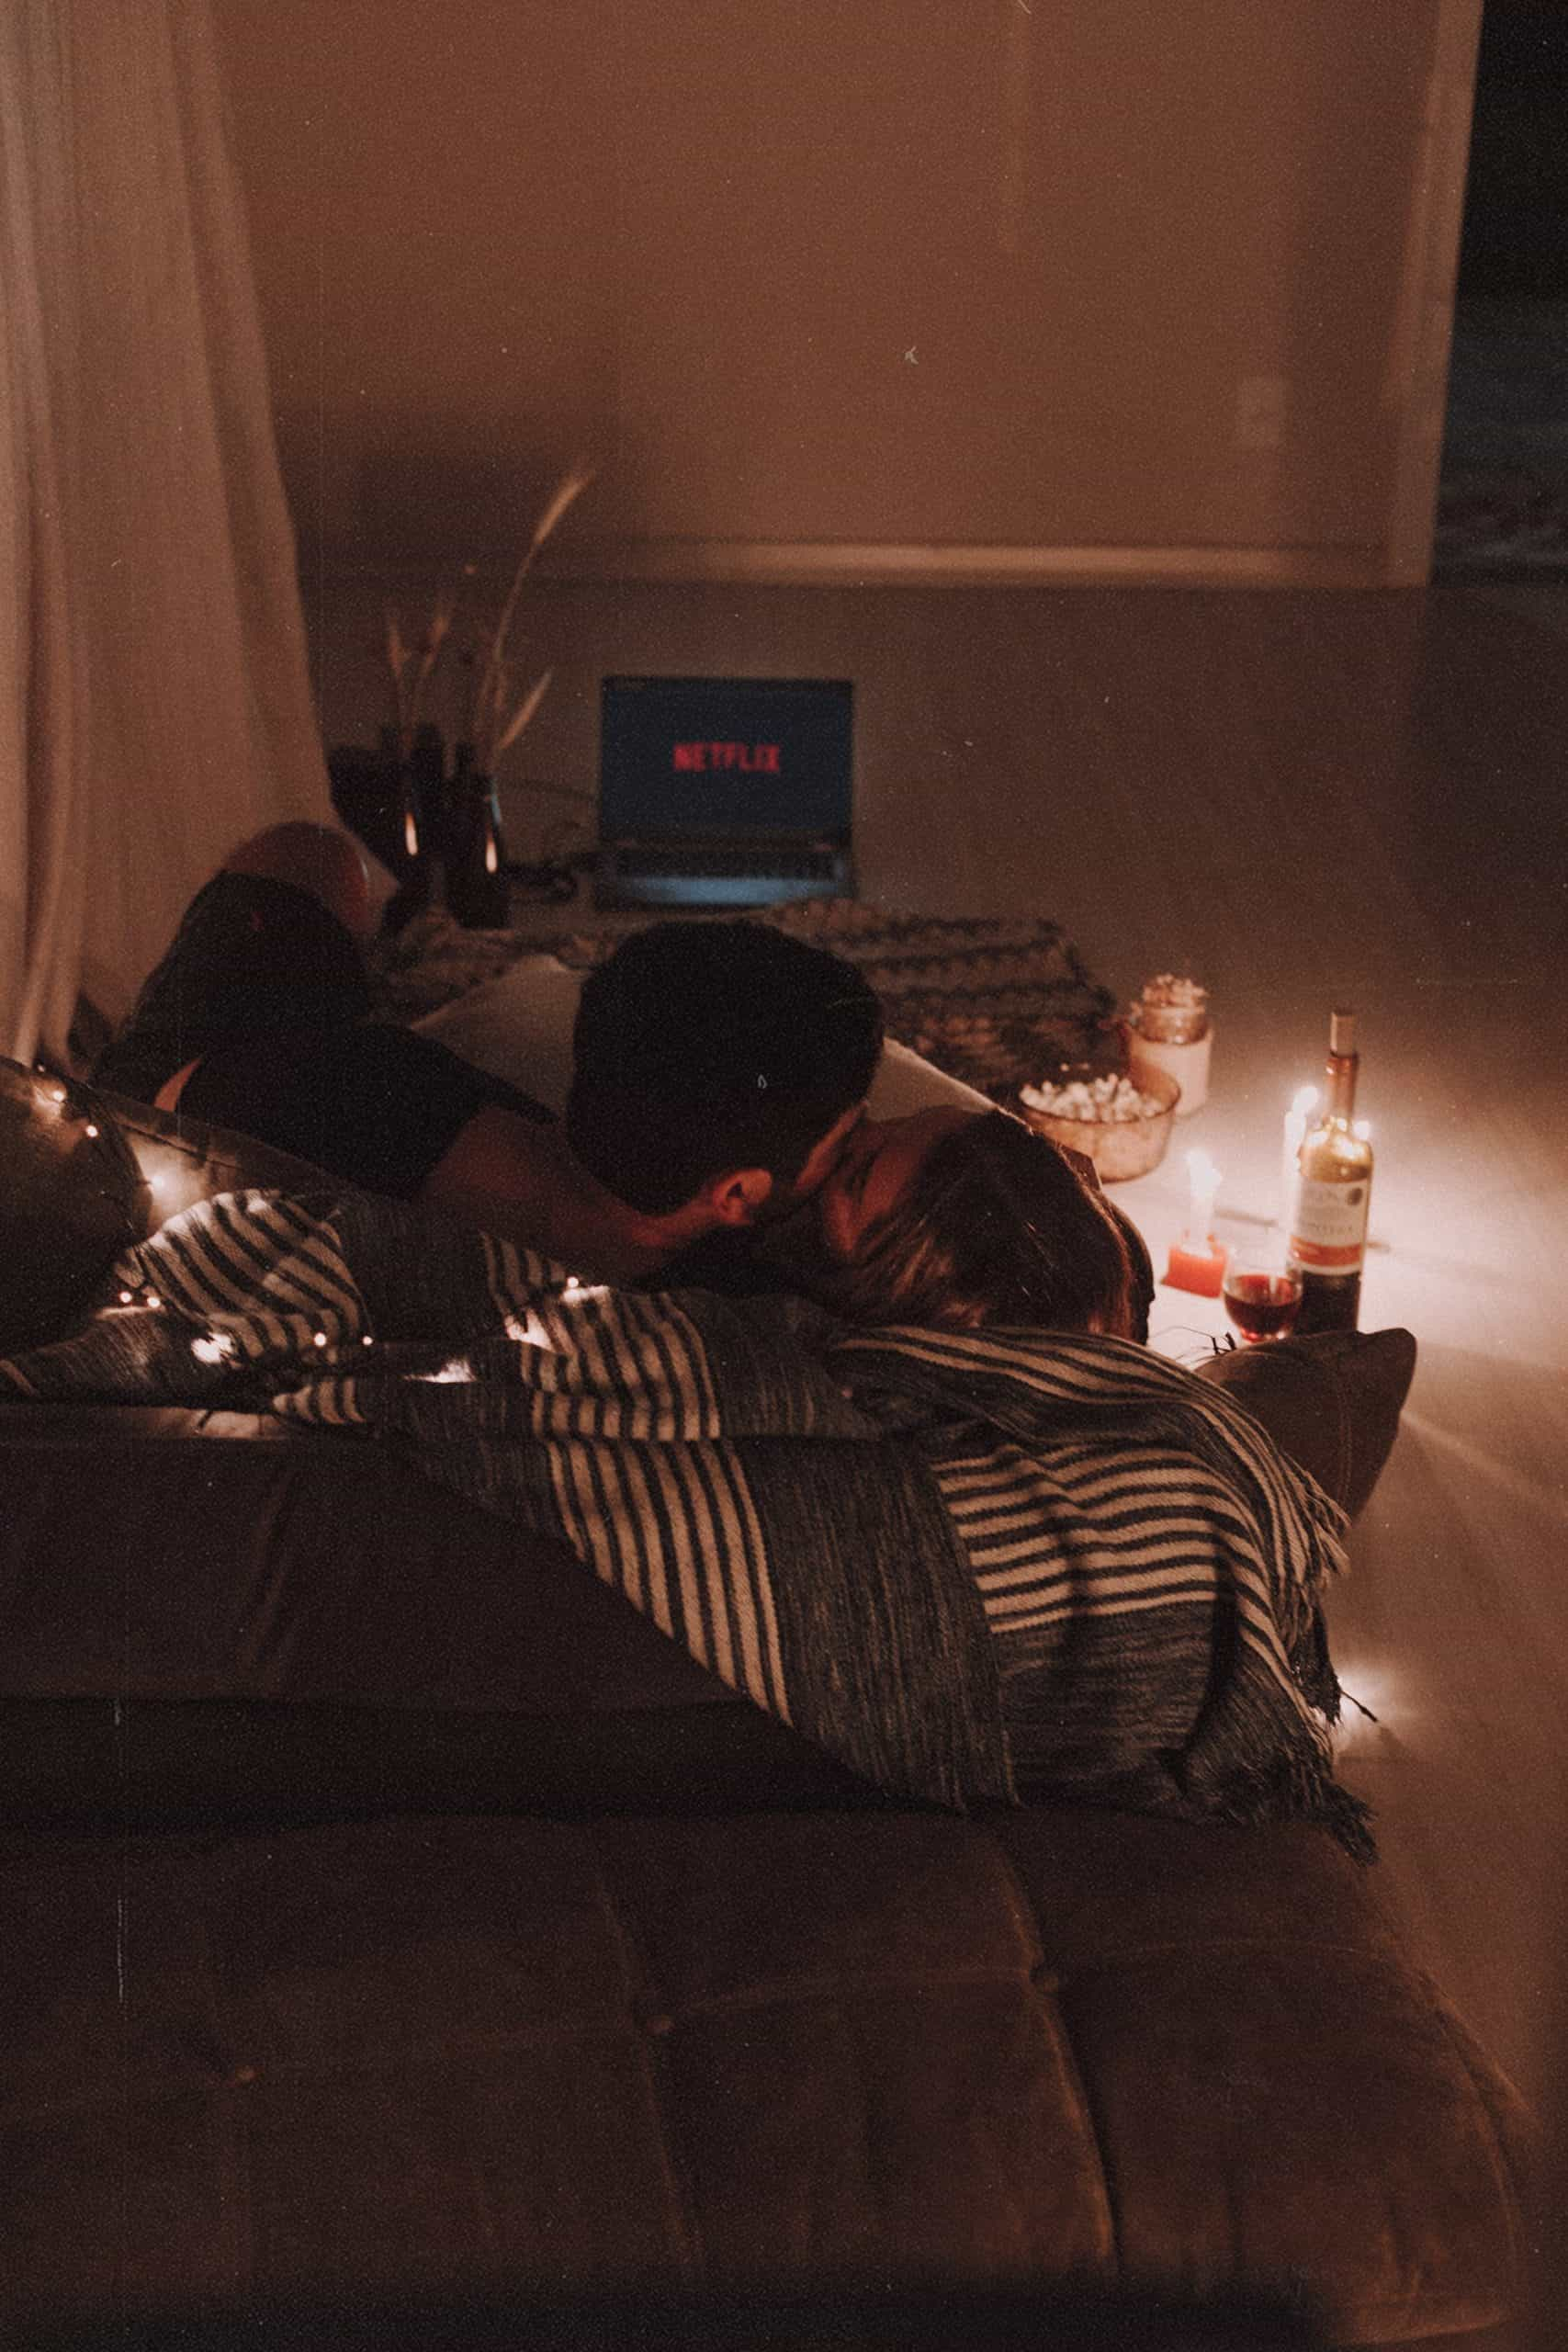 Couple having some netflix and chill, cuddling on the sofa with popcorn, candles and a bottle of wine